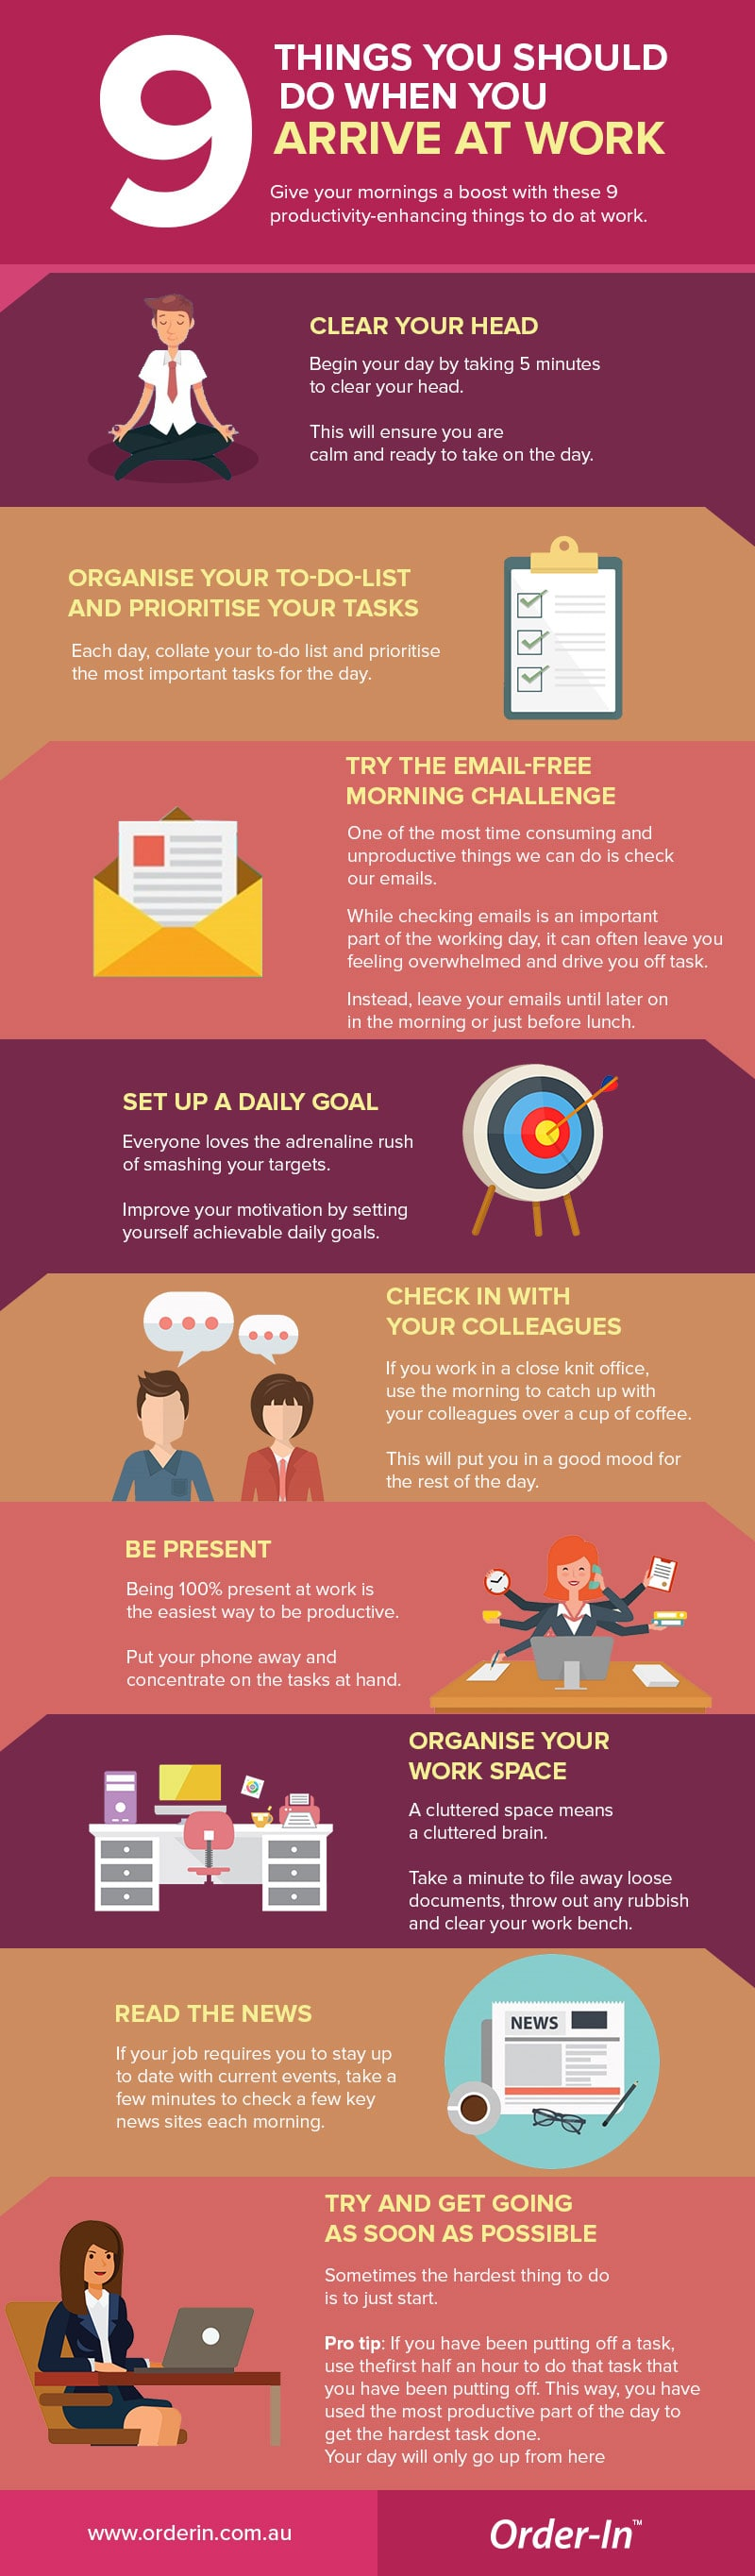 9 things you should do when you arrive at work infographic